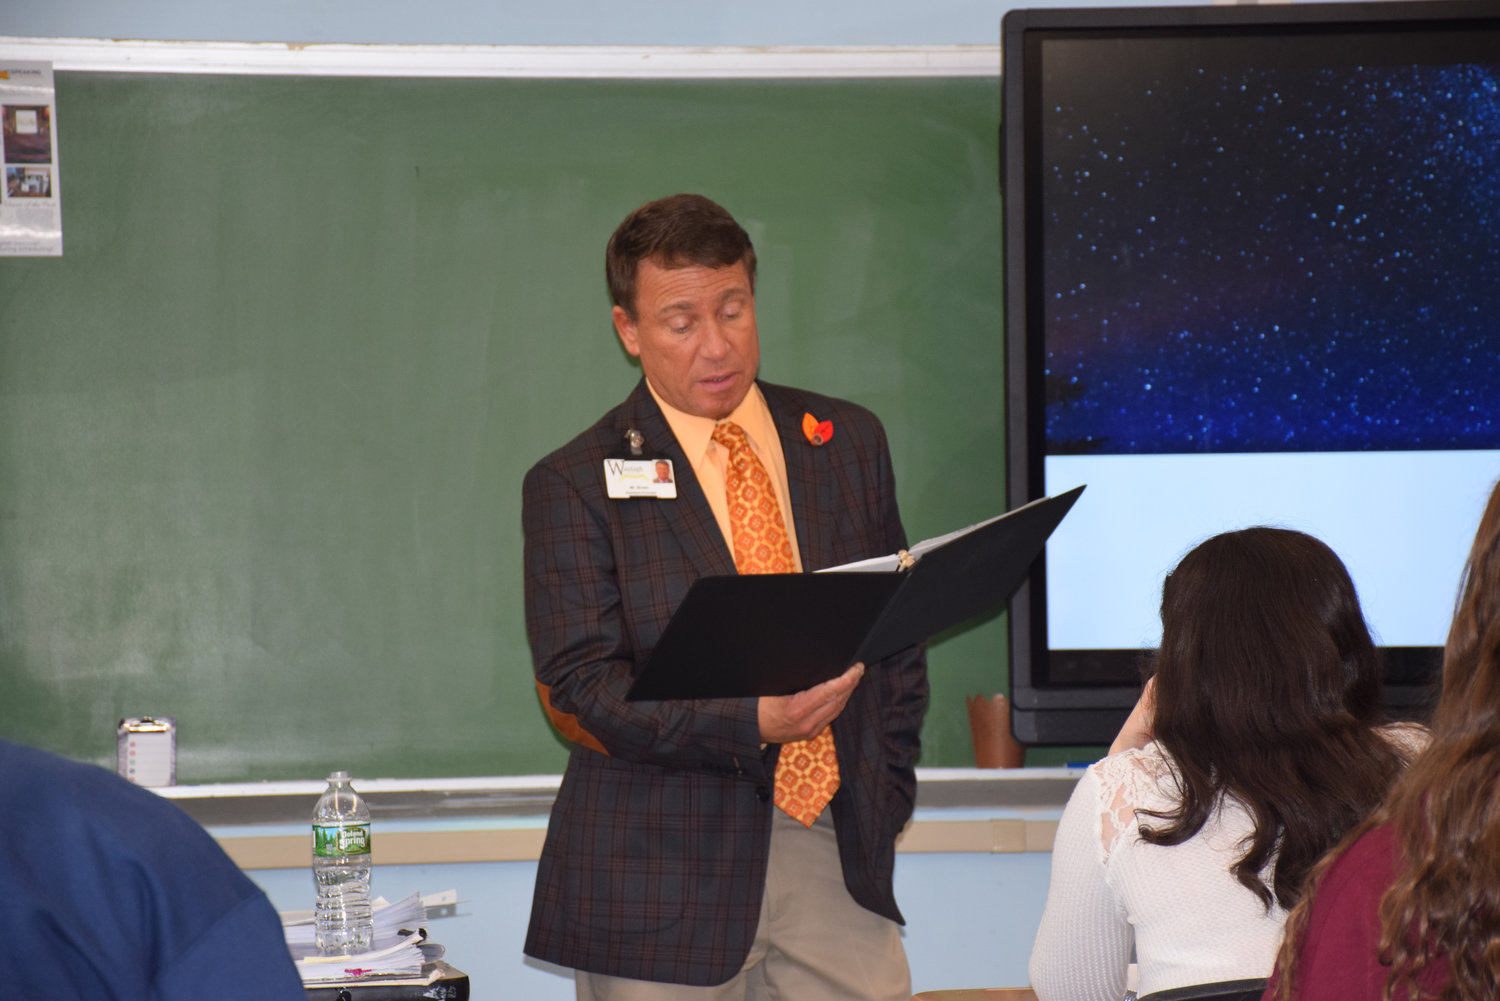 Wantagh High School Assistant Principal James Brown, an experienced actor, read from Shakespeare's sonnets.